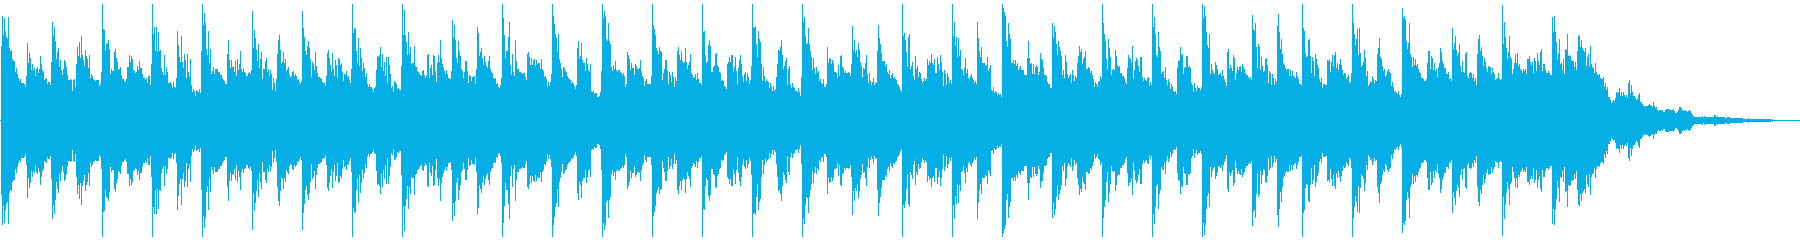 Bright electronic jingle, corporate VP's reproduced waveform